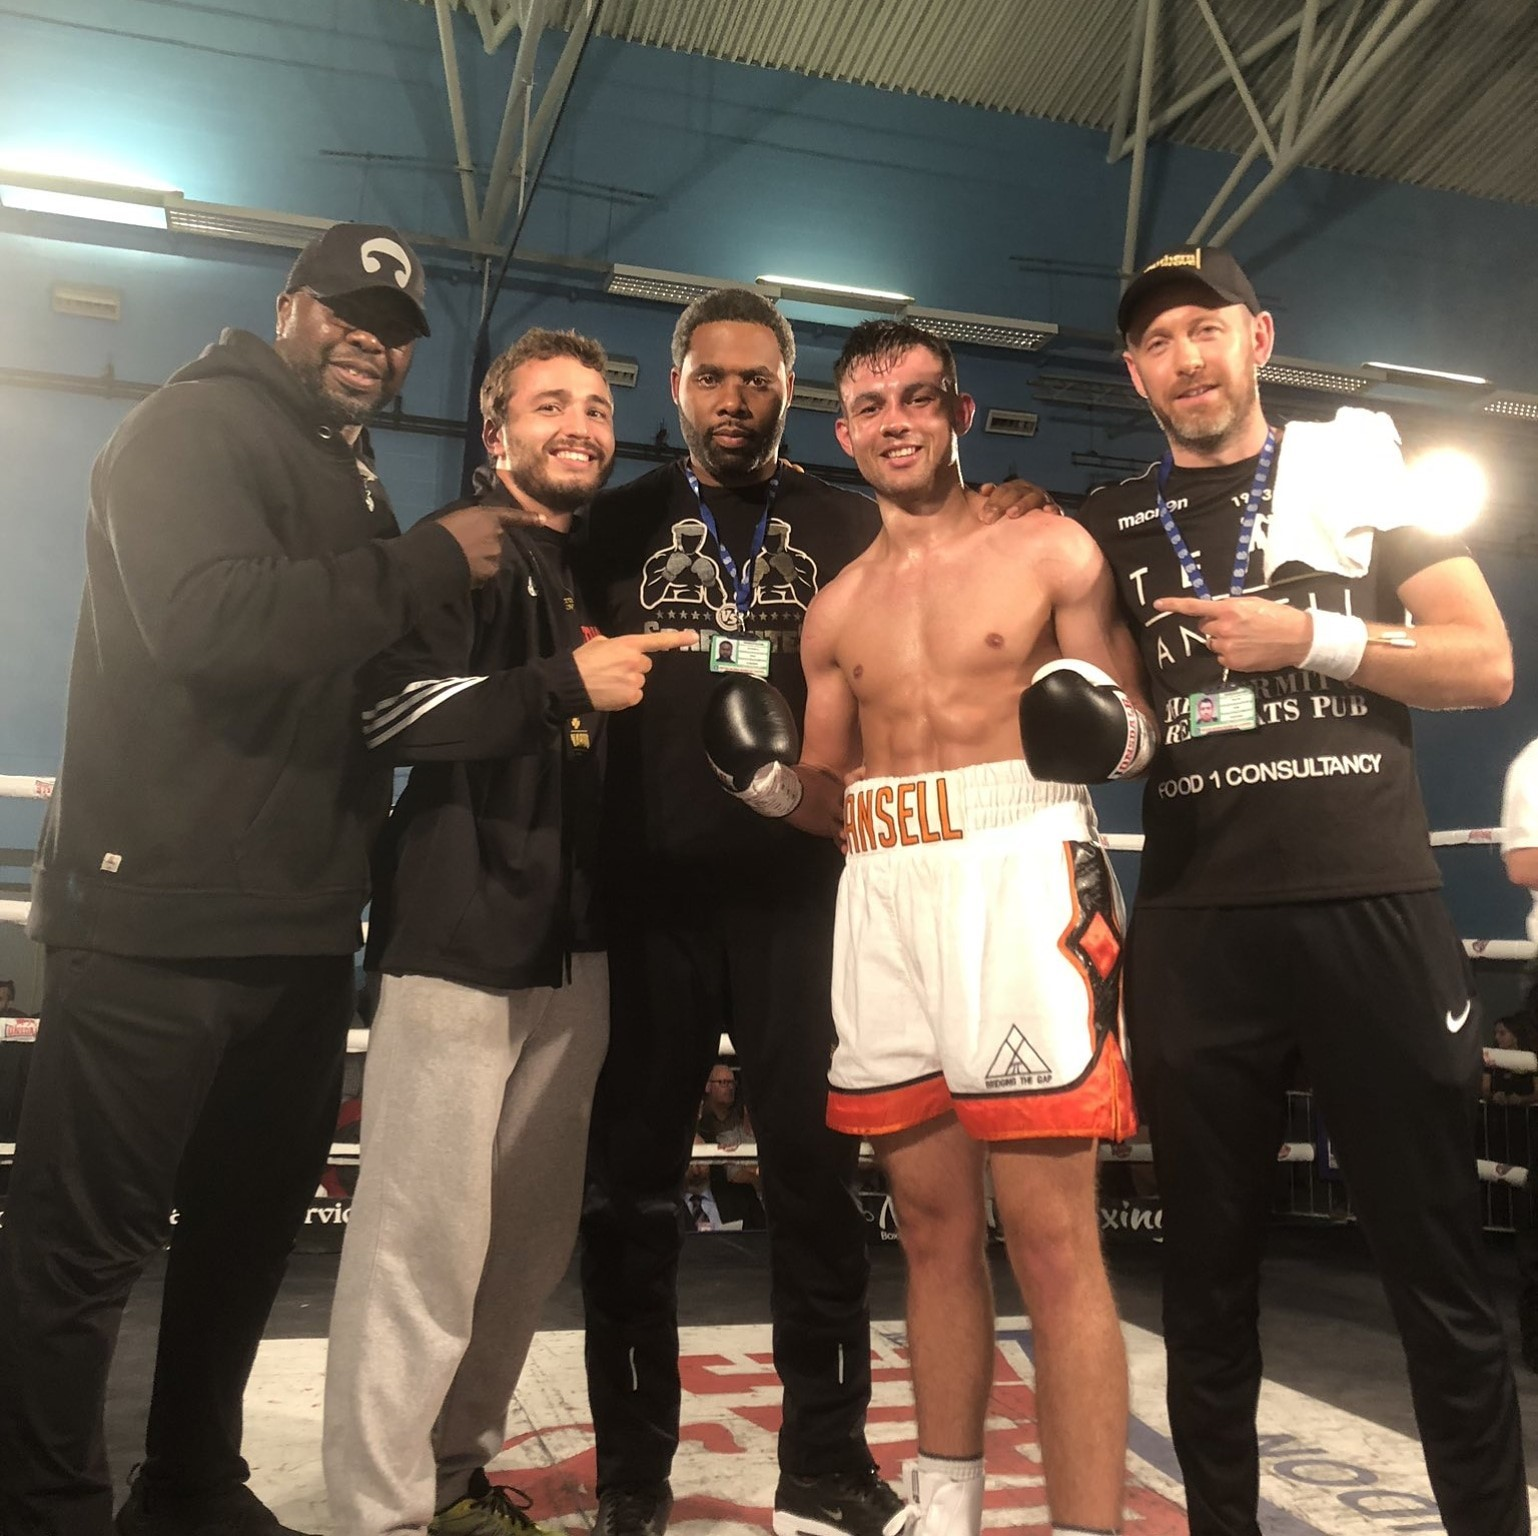 Tom Ansell with his training team after his fifth win as a professional boxer against Lee Hallett..